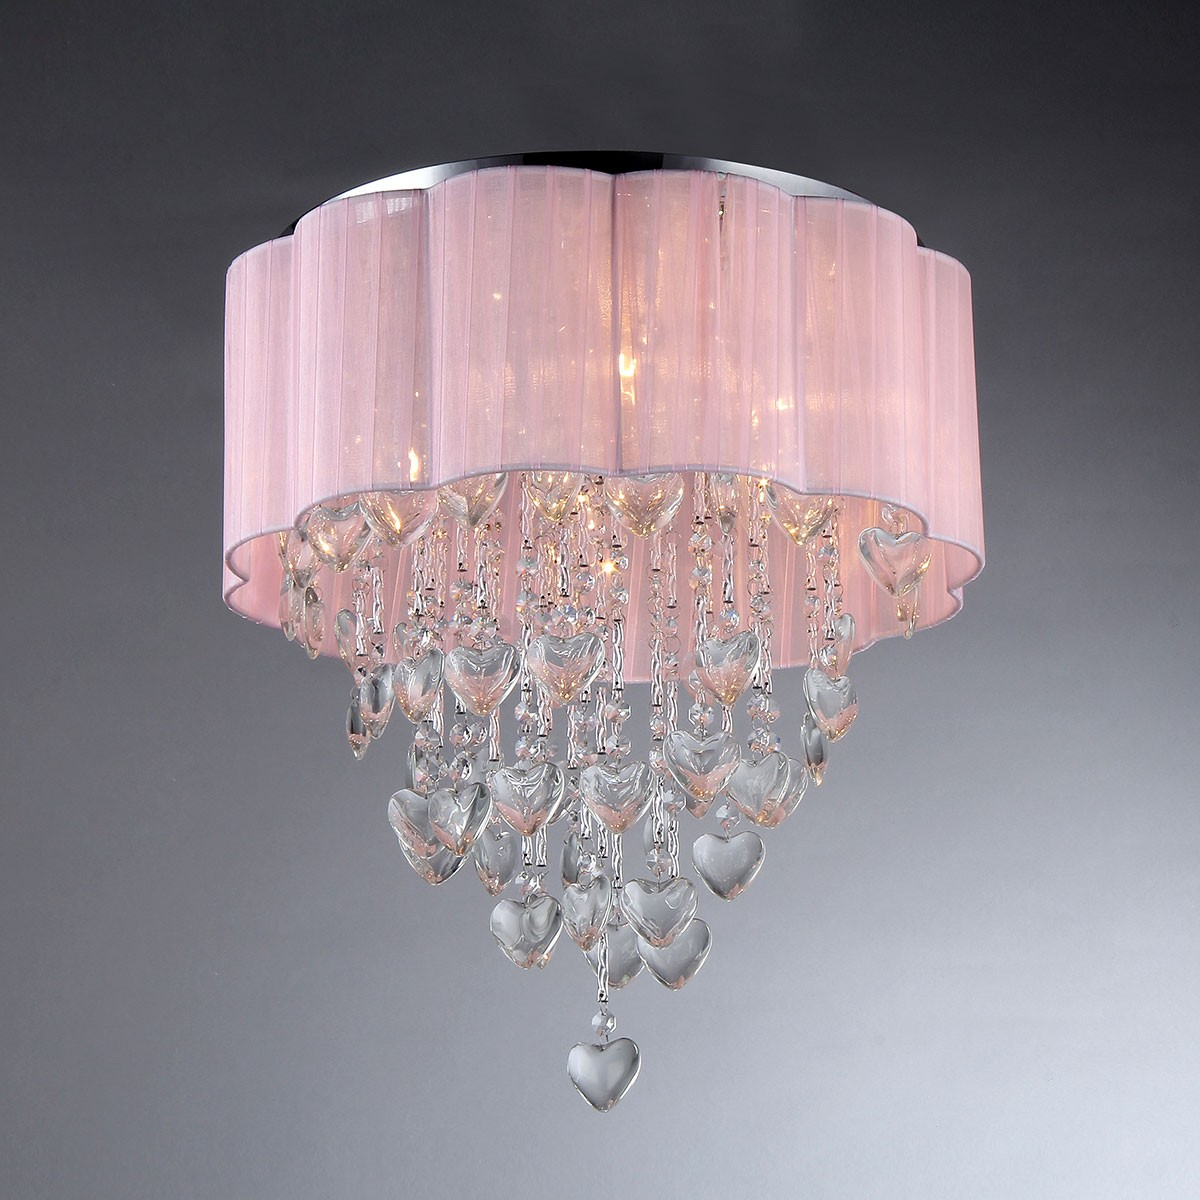 6-Light Crystal Ceiling Light with Round Pink Shade (DK-SS007)